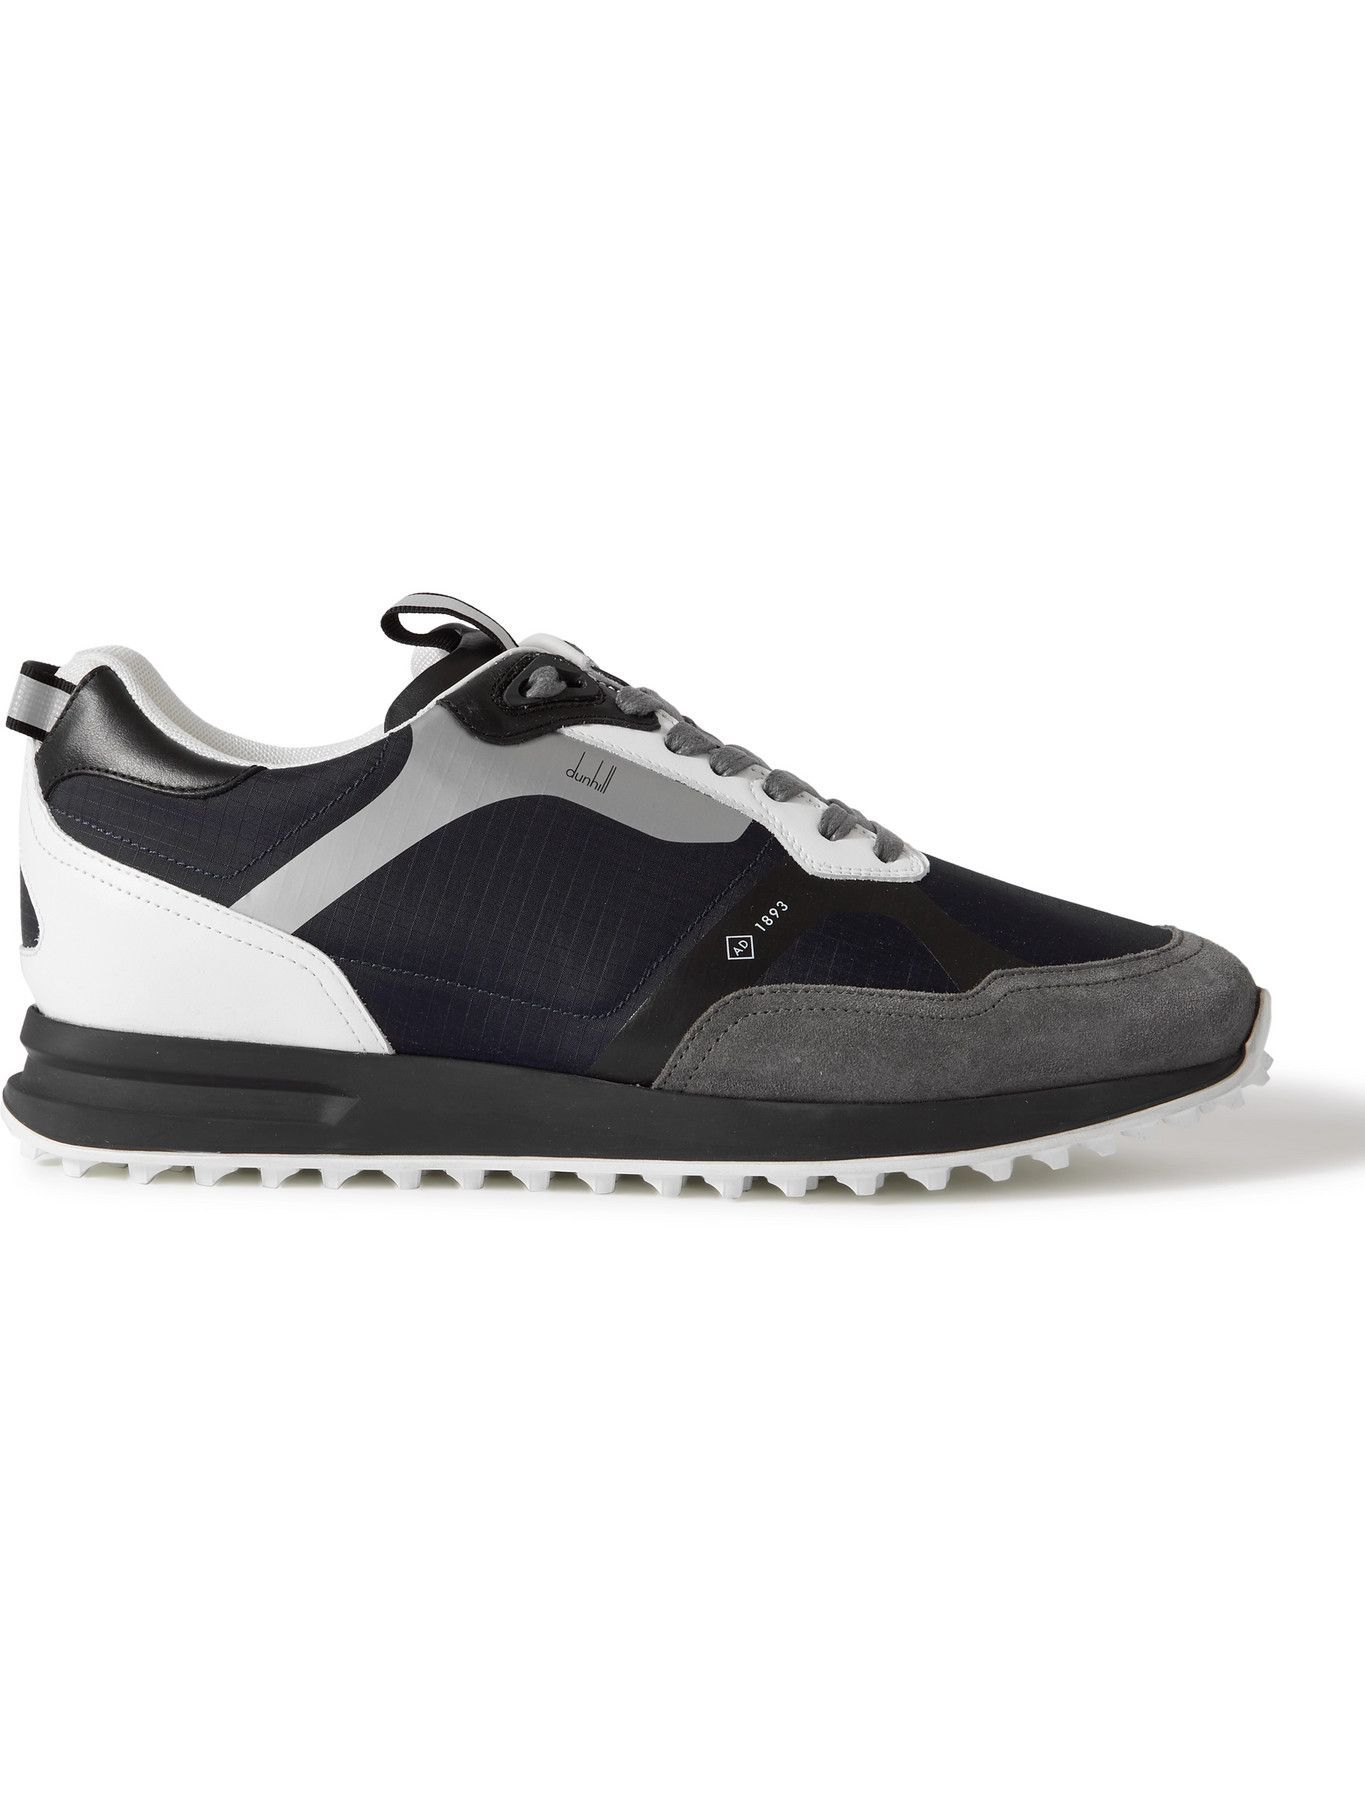 Dunhill - Radial 2.0 Leather and Suede-Trimmed Ripstop Sneakers - Blue